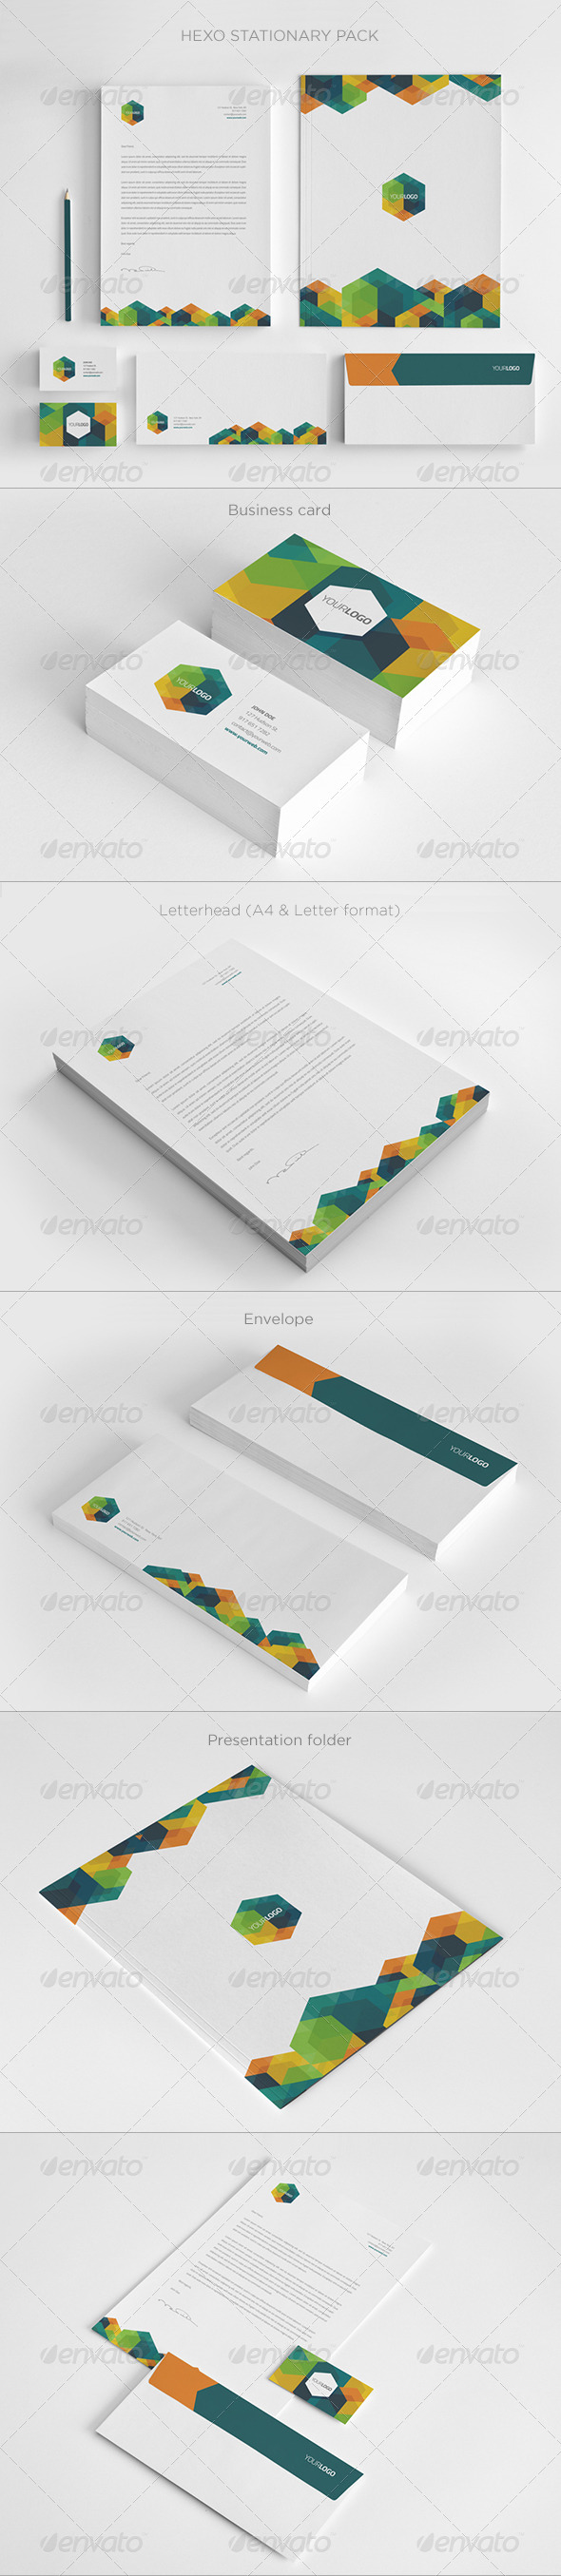 Modern Hexo Stationary Pack  Presentation Folder Stationary And